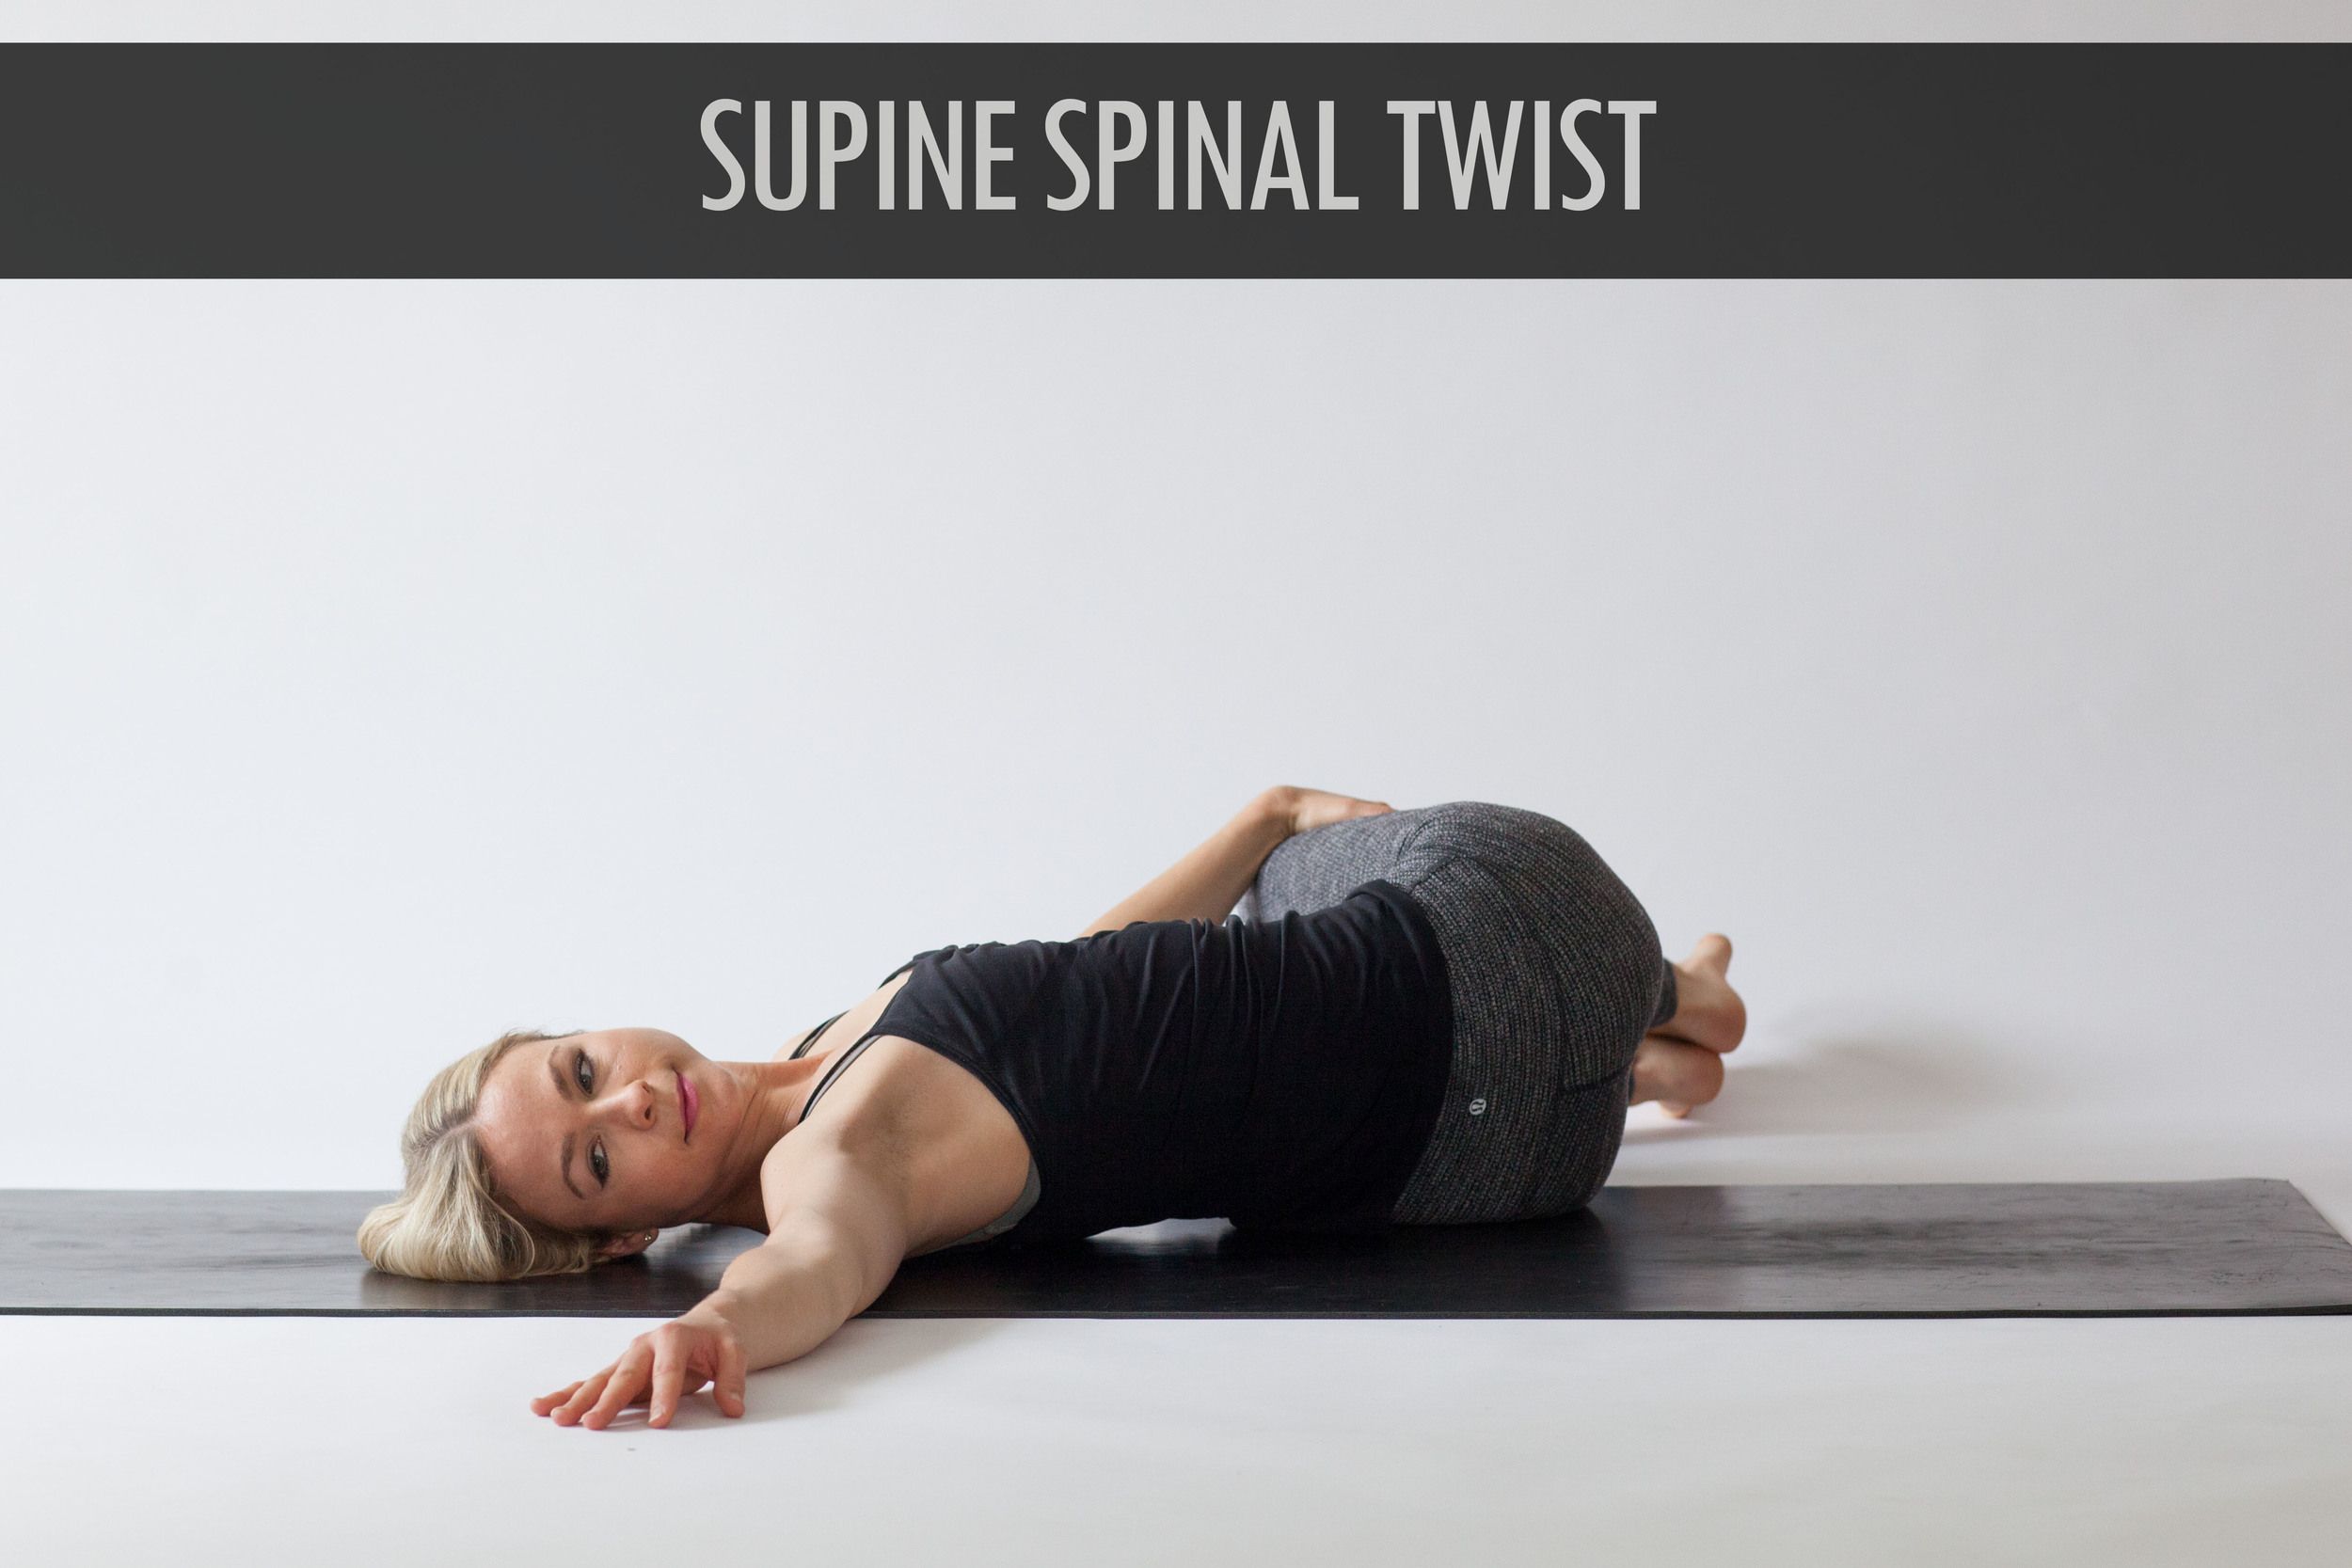 Supine Spinal Twist - Copy.jpg